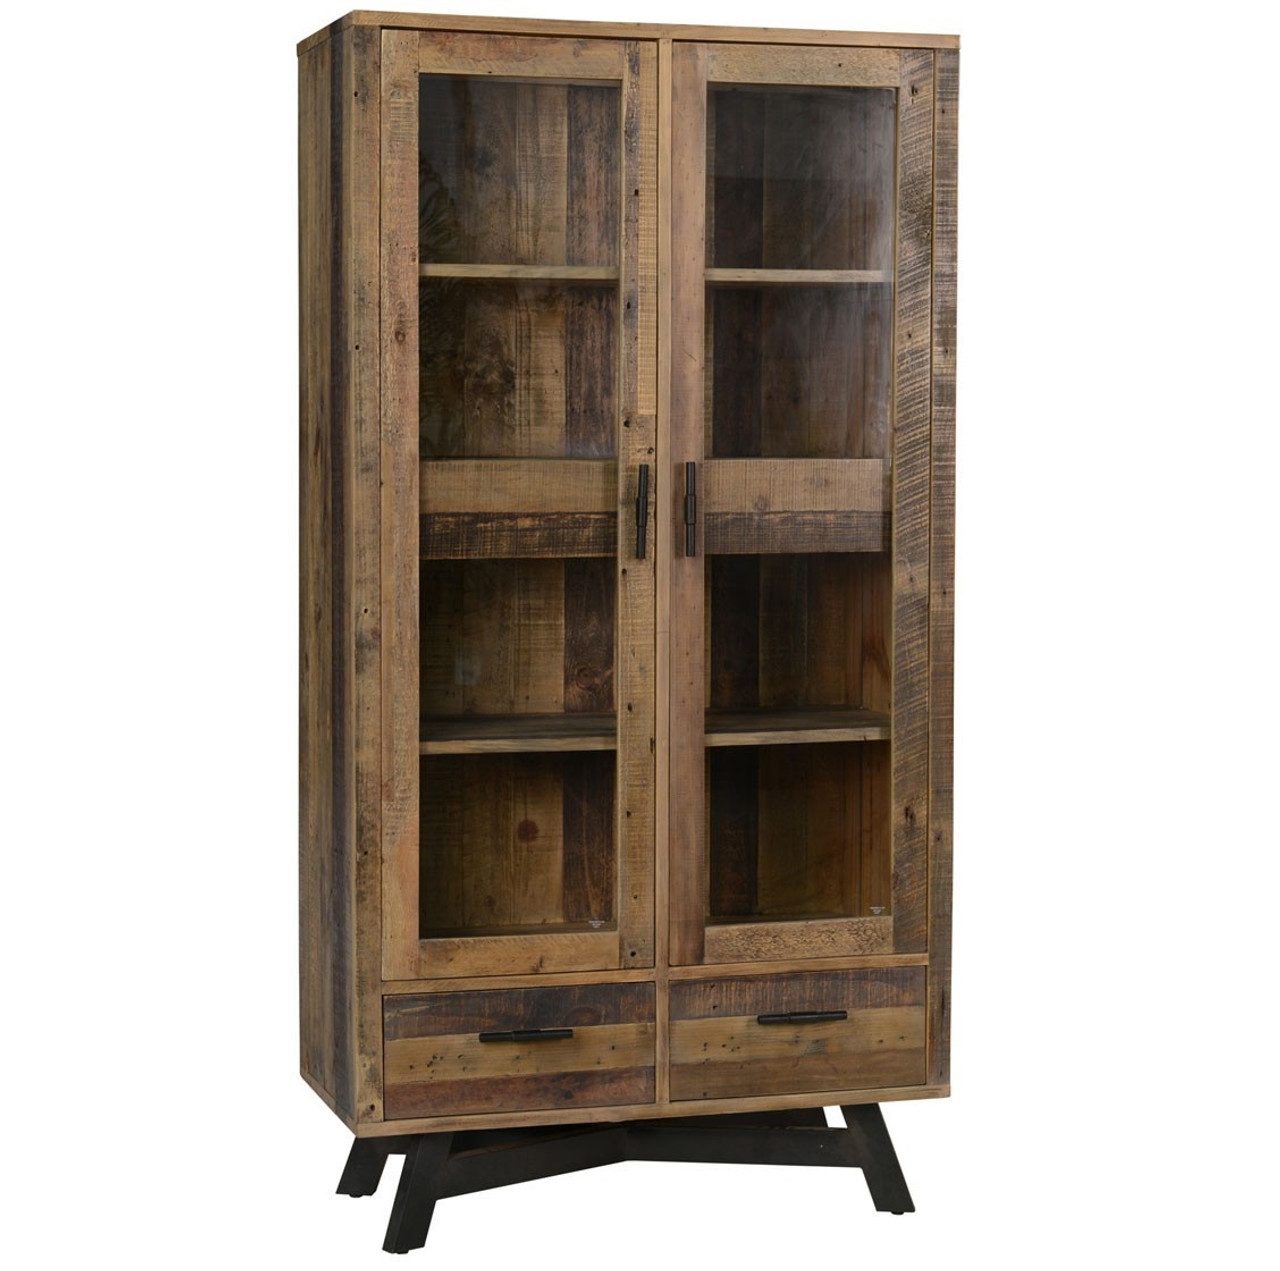 Reclaimed Wood Rustic Home Office: Farmhouse Rustic Reclaimed Wood Curio Cabinet With Doors